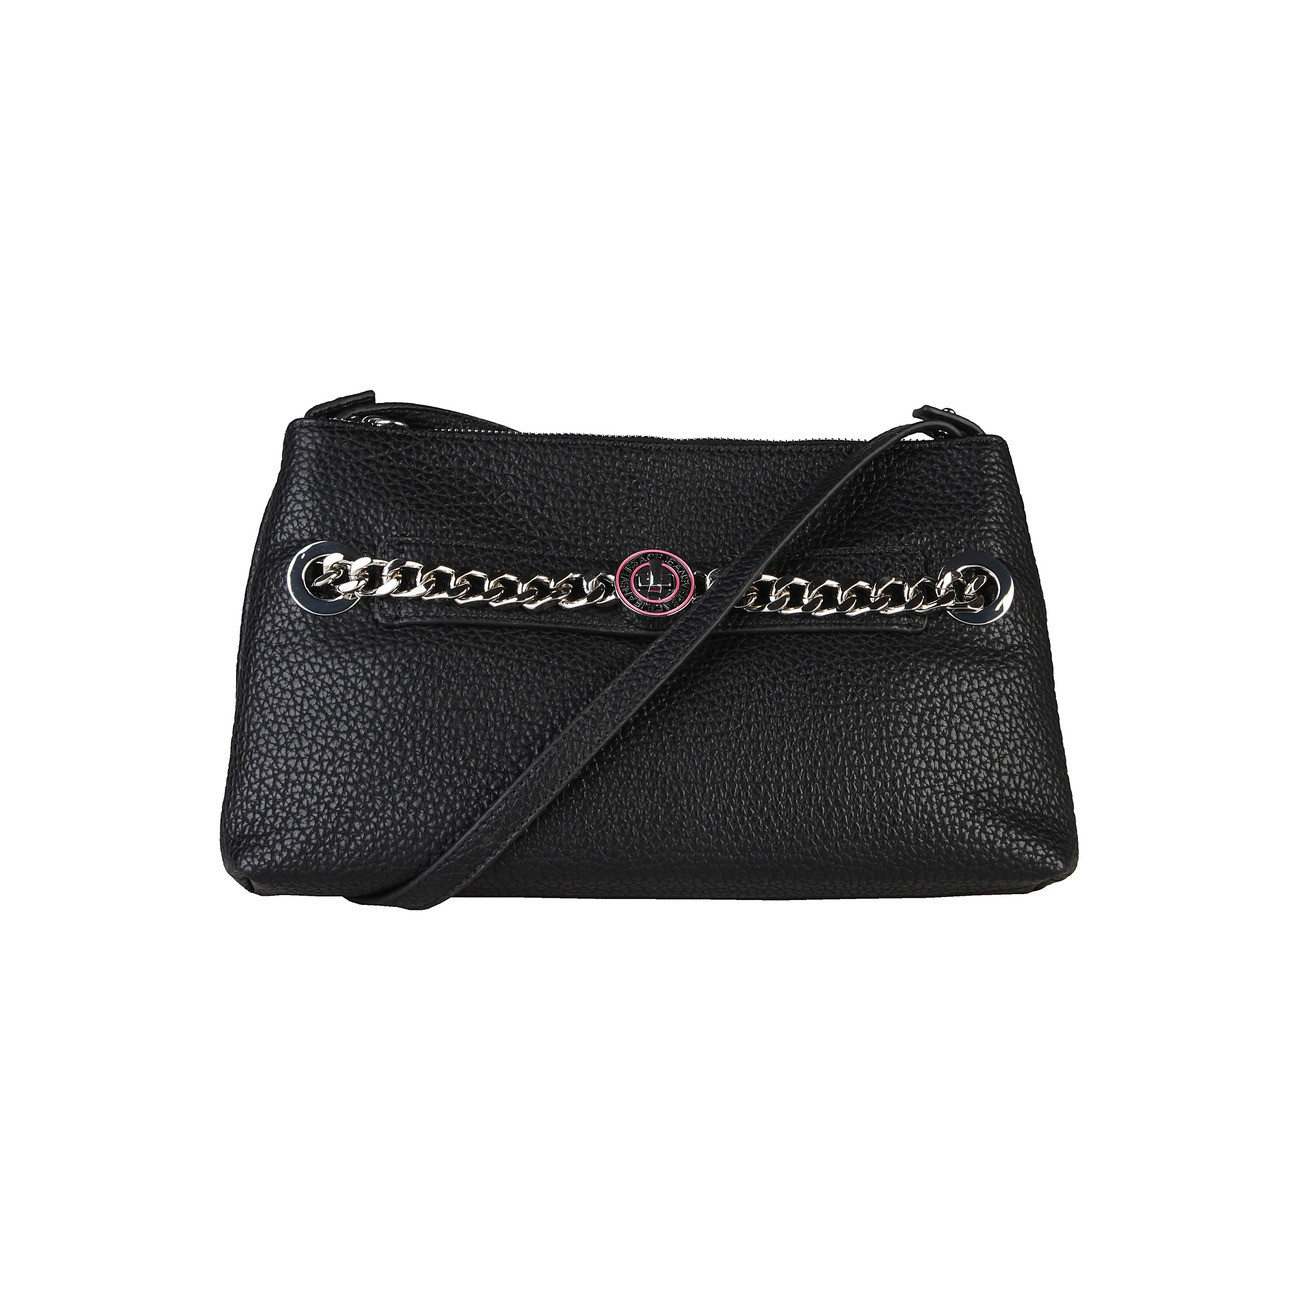 af5a9ce956 Ladies Shoulder Bag Versace Jeans - E1VNBBG5 75285 From Eco ...